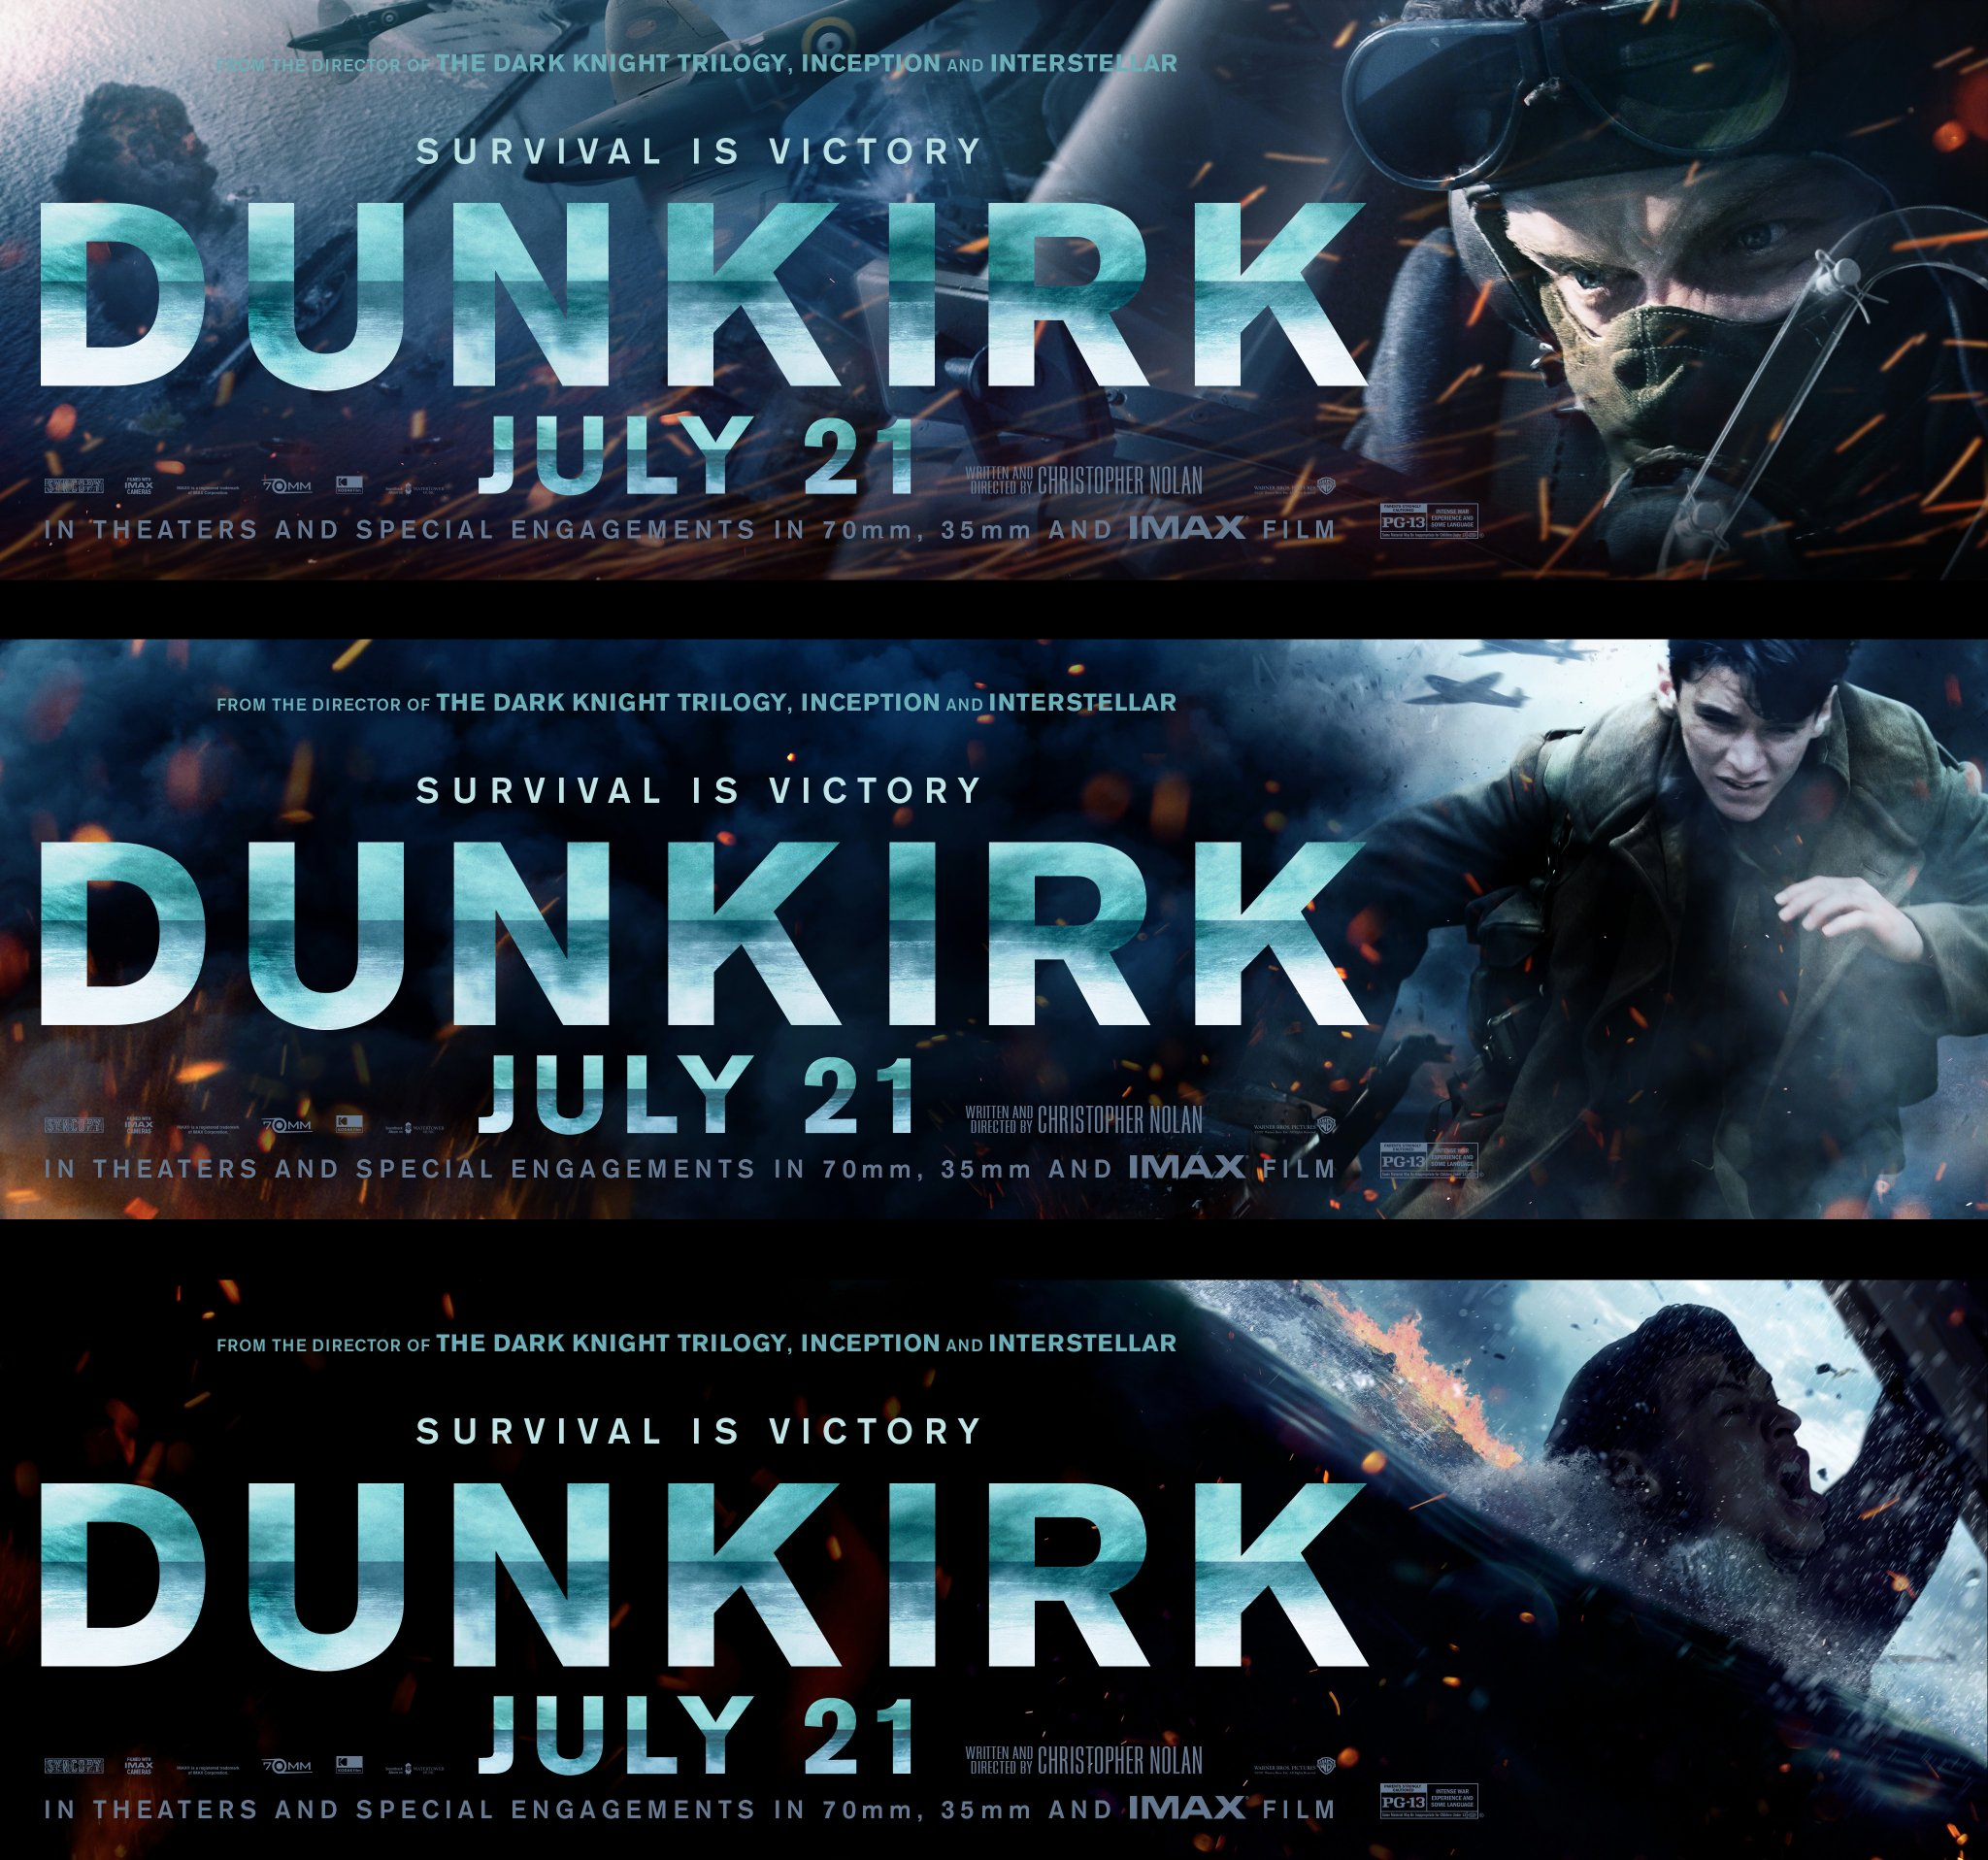 dunkirk movie banner posters teaser trailer